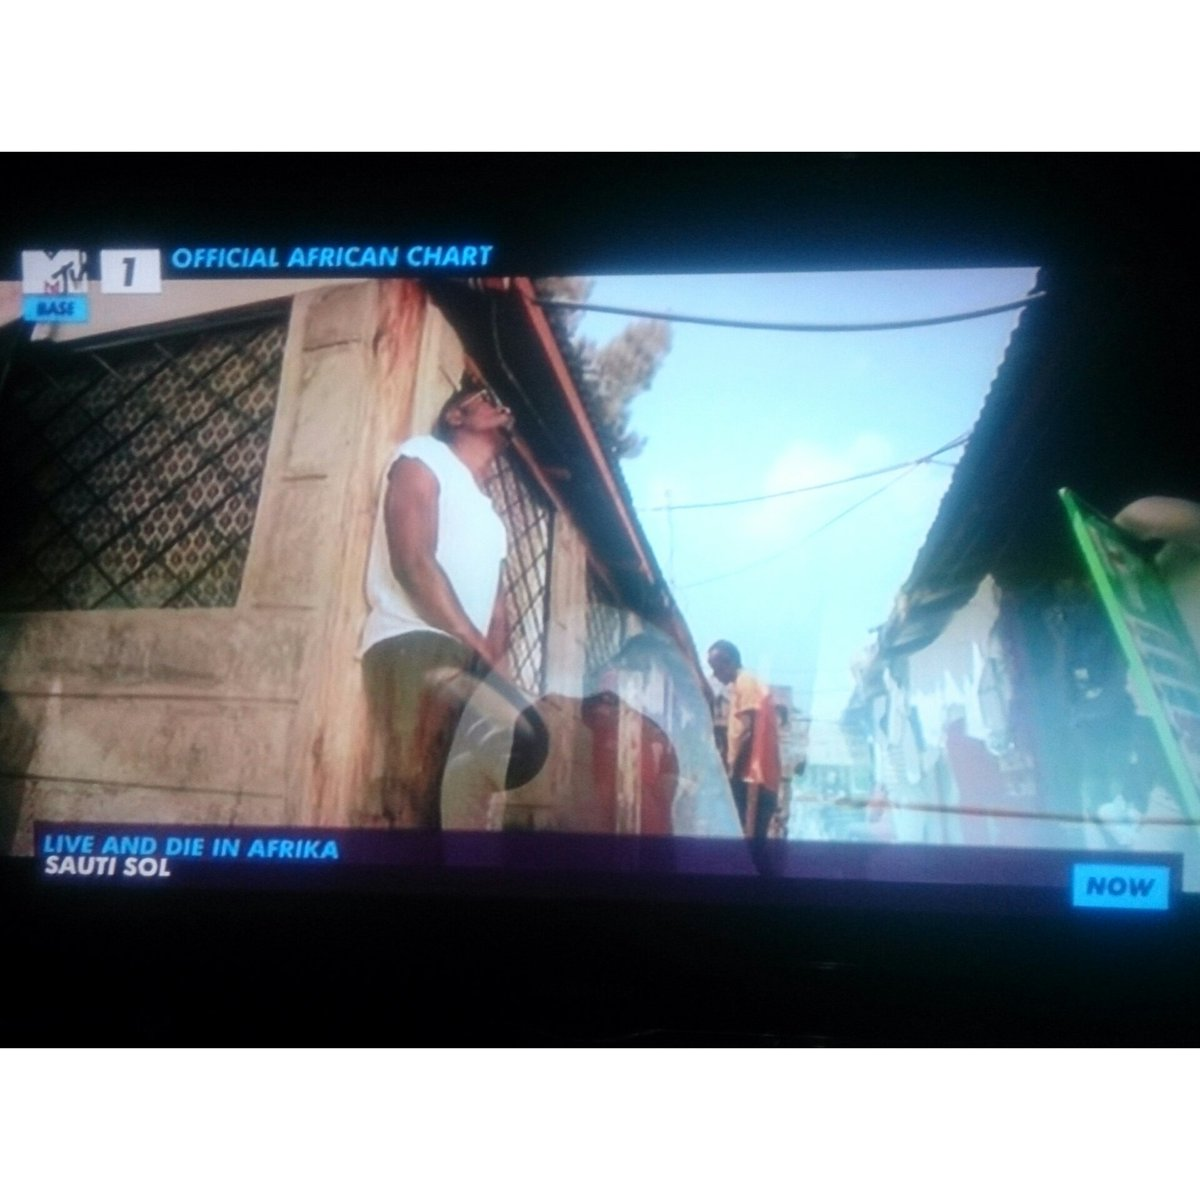 Thank you Africa for making @SautiSol #LiveandDieinAfrika No. 1 on @MTVbaseAfrica #OfficialAfricanCountdown #Kenya https://t.co/hk7Q8hVrQY